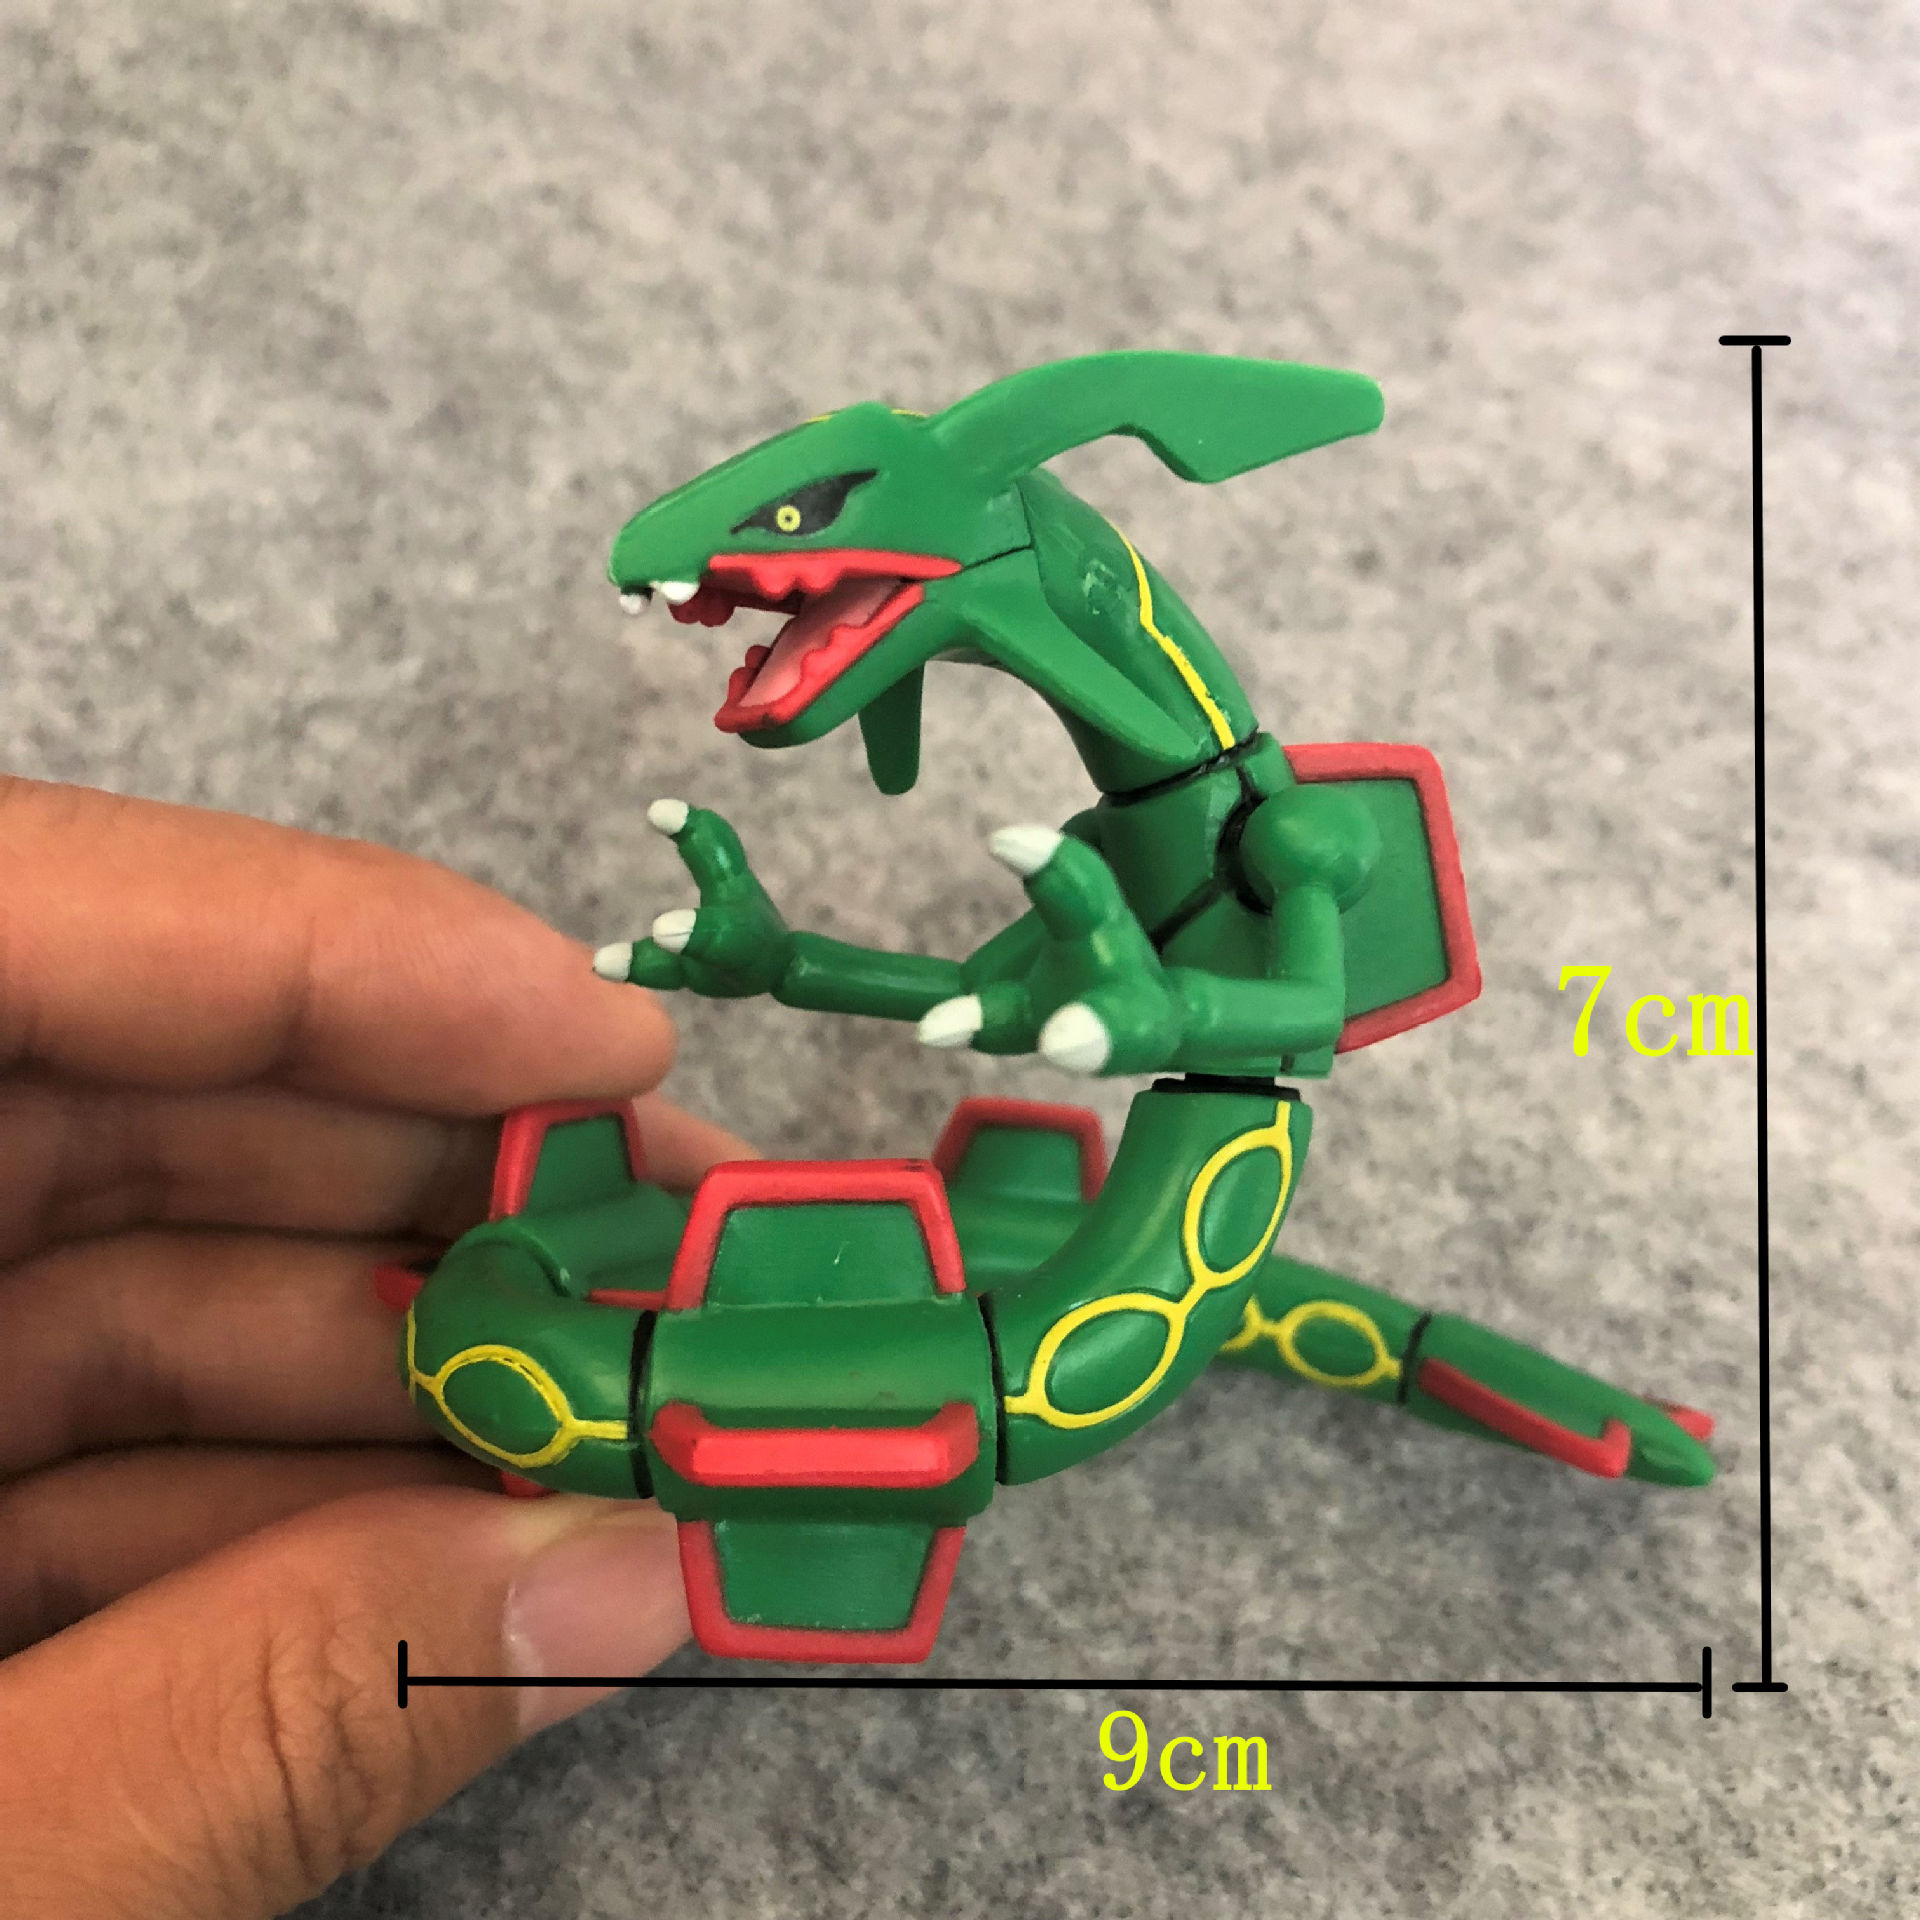 TAKARA TOMY Pokemon Rayquaza skylung Joint movability anime action & toy figures model toys for children